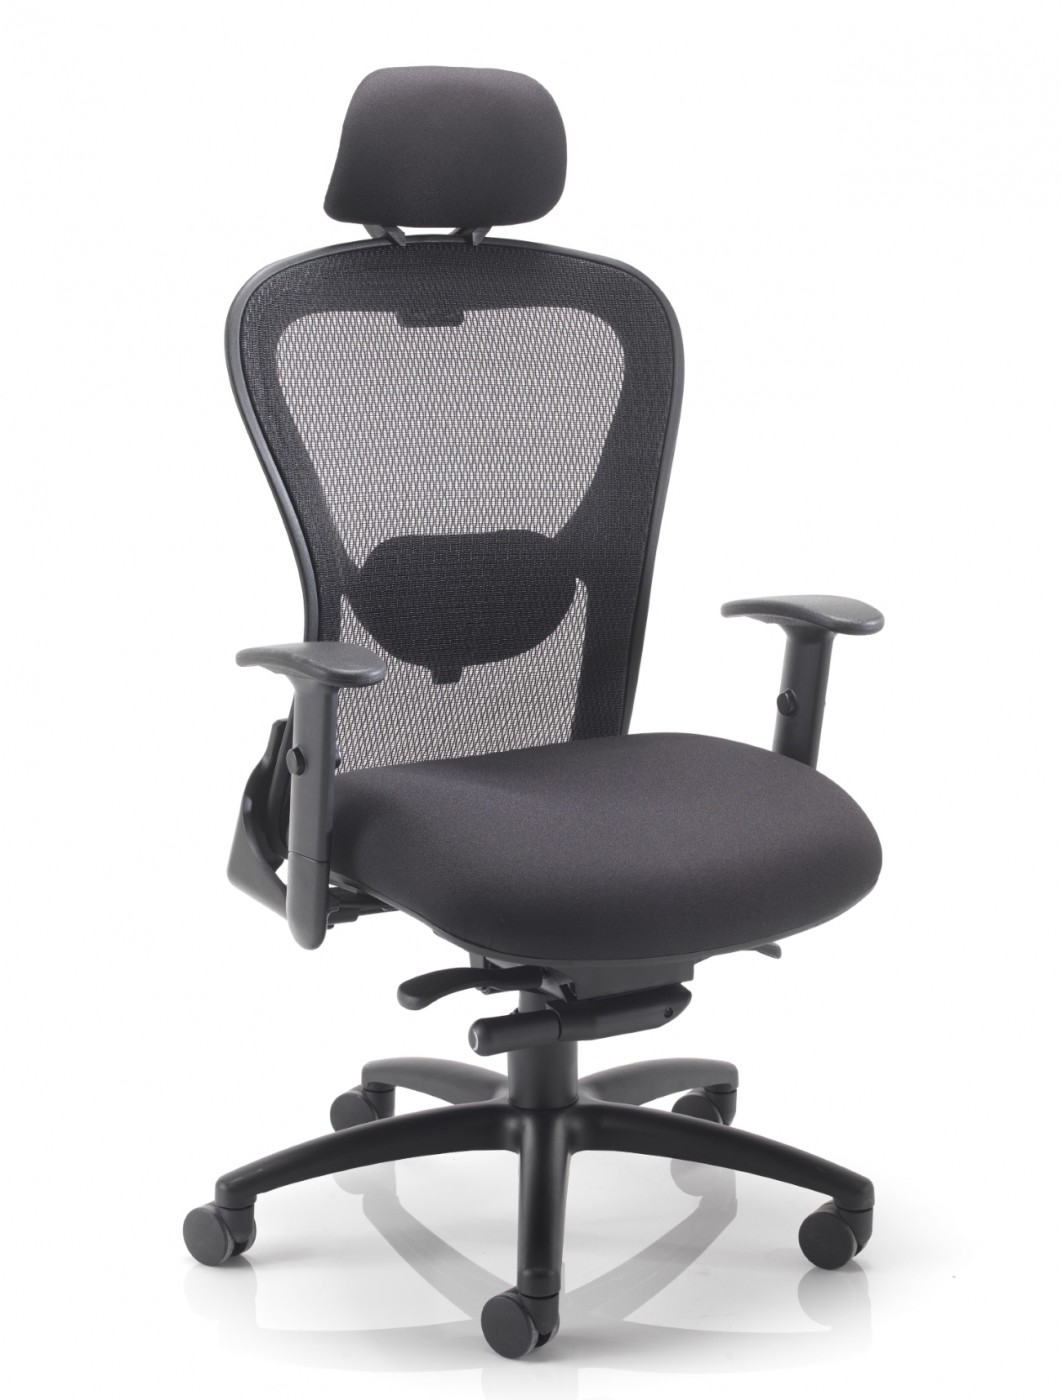 24 Hour Office Chairs Office Chairs Tc Strata 24 Hour Mesh Office Chair Ch0735bk